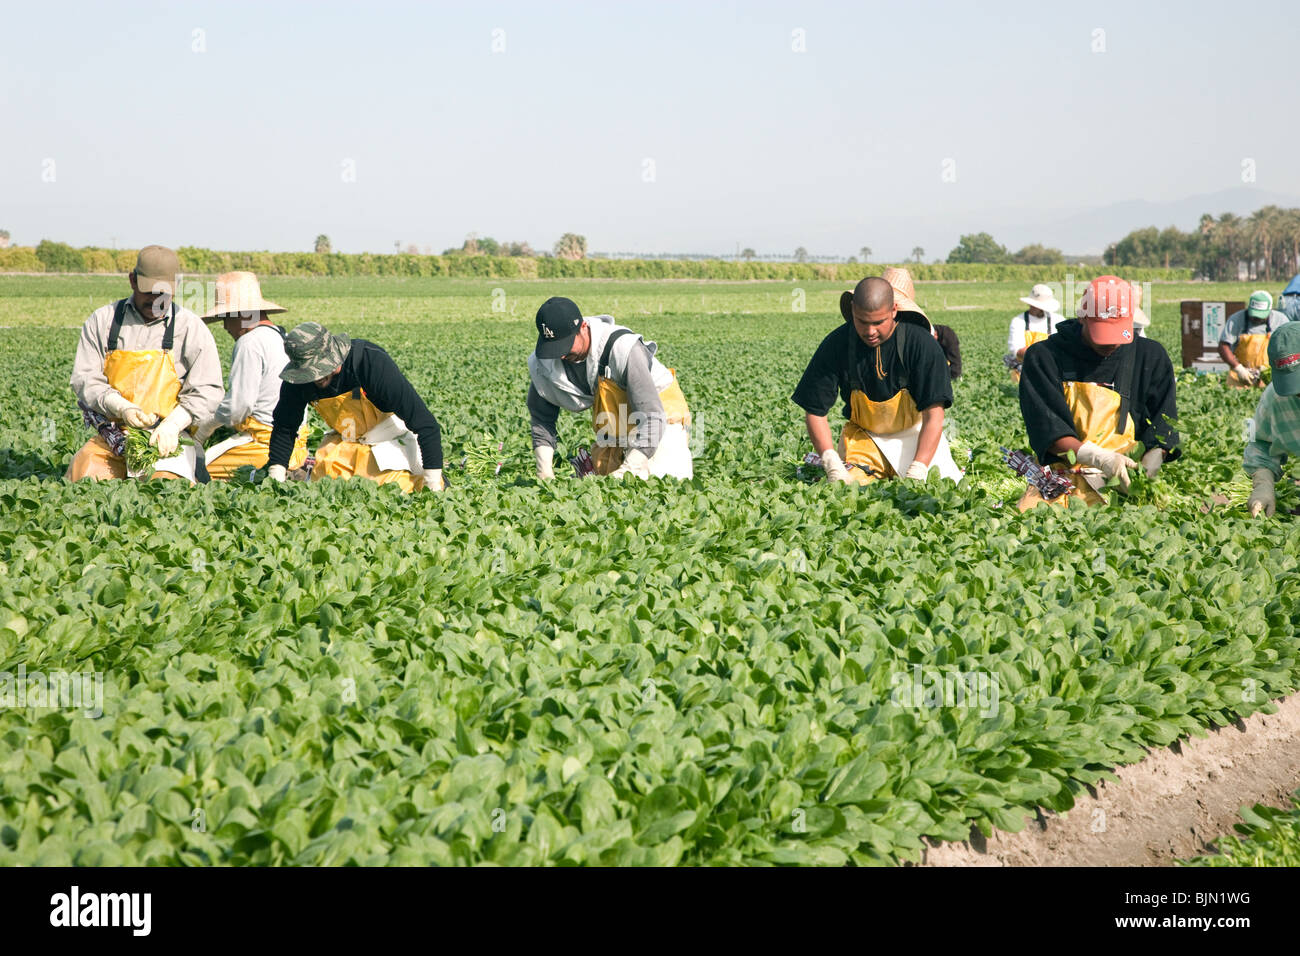 Spinach, workers harvesting. - Stock Image